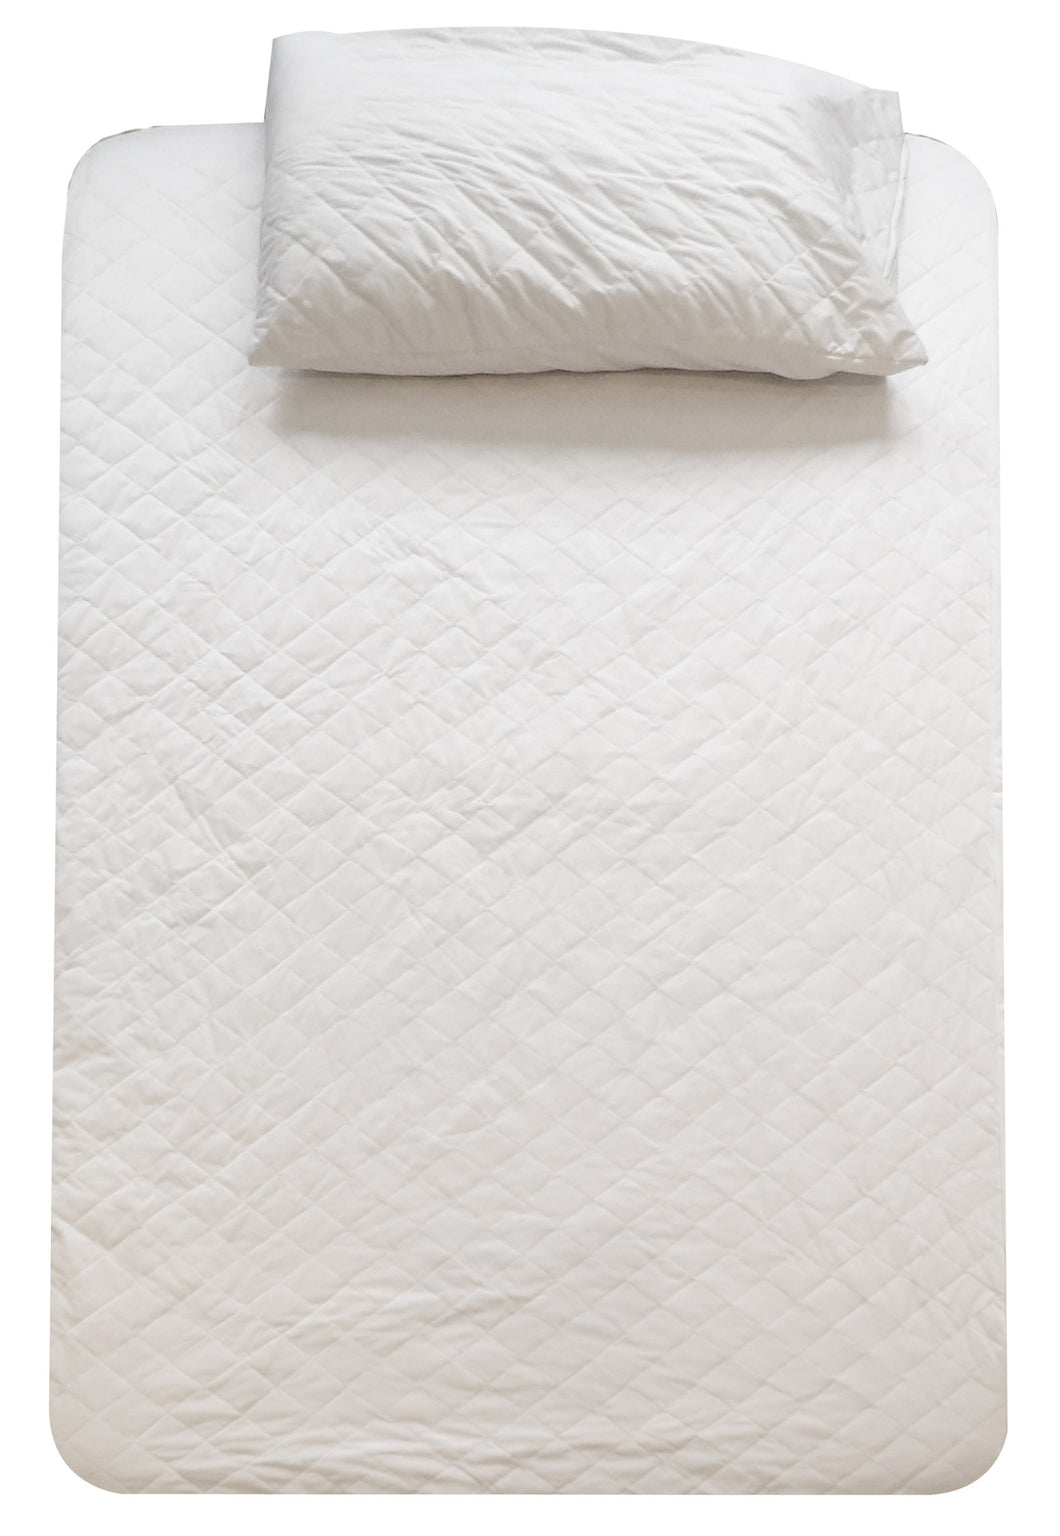 Mattress and Pillow Protector, buy any 2 sizes get free shipping